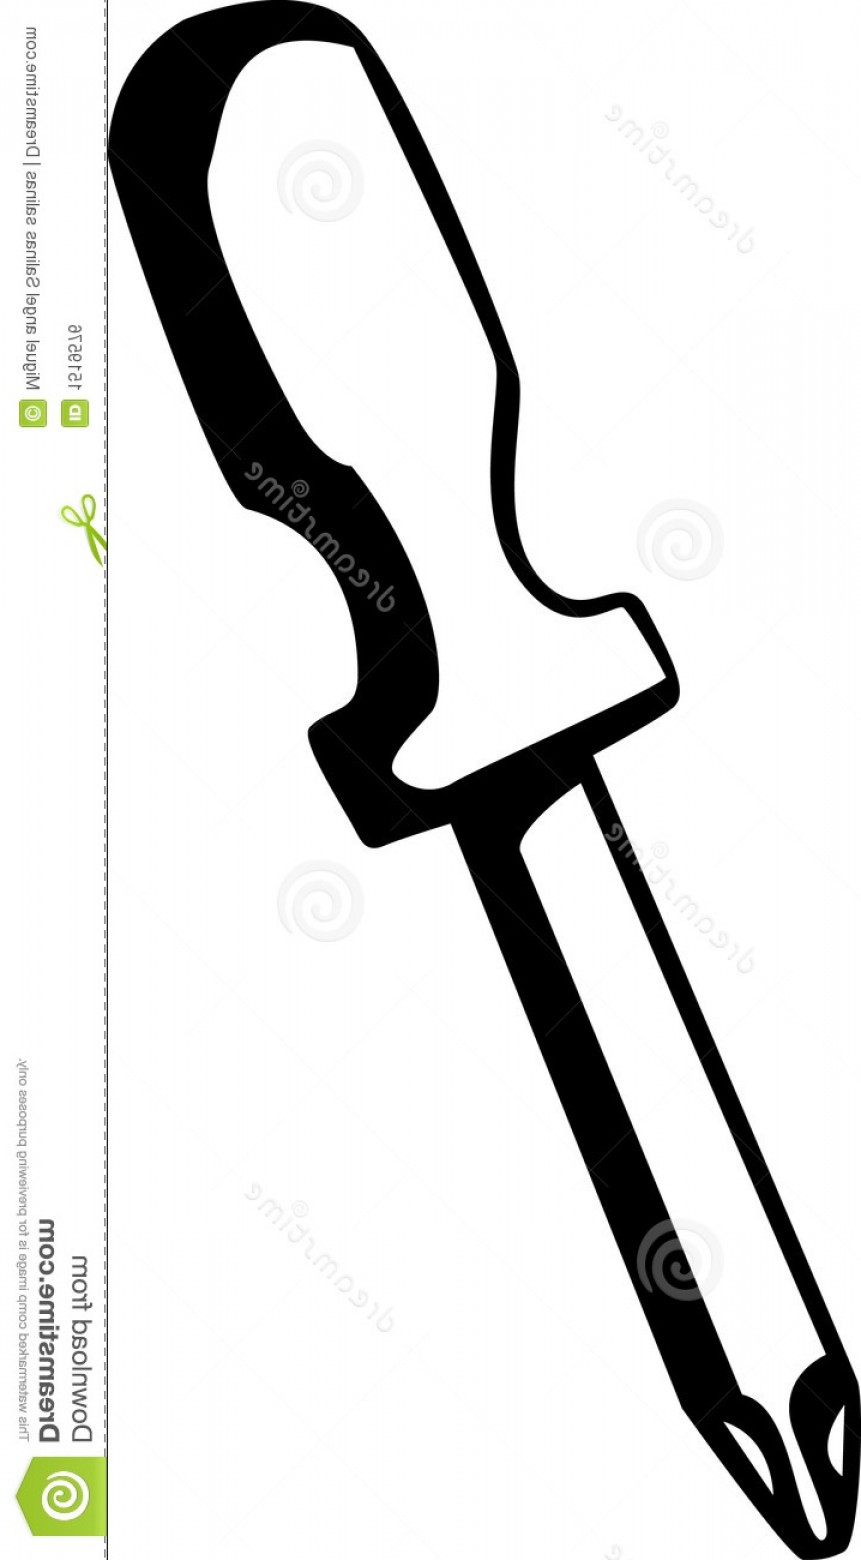 Flat Head Screwdriver Vector: Royalty Free Stock Image Phillips Head Screwdriver Vector Illustration Image